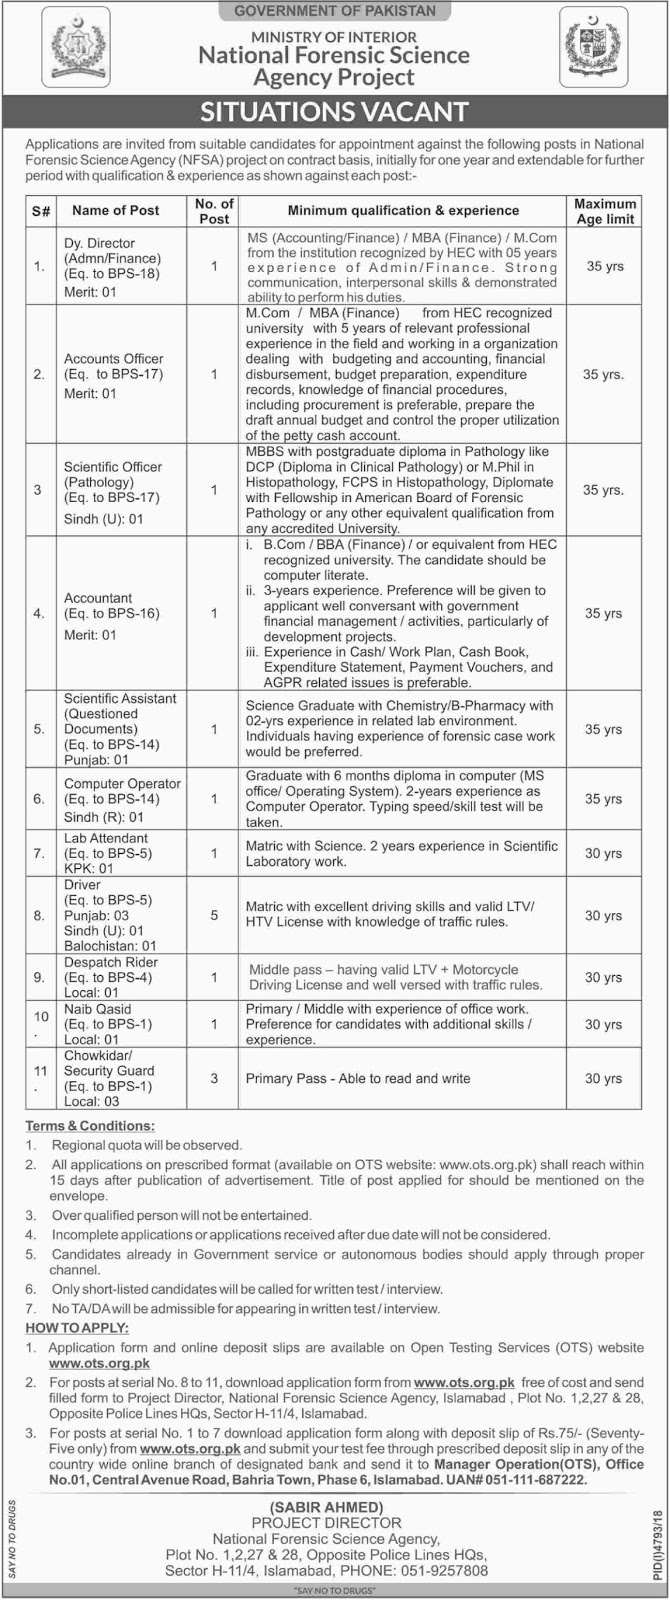 Ministry of Interior Jobs 2019 NFSA National Forensic Science Agency Project